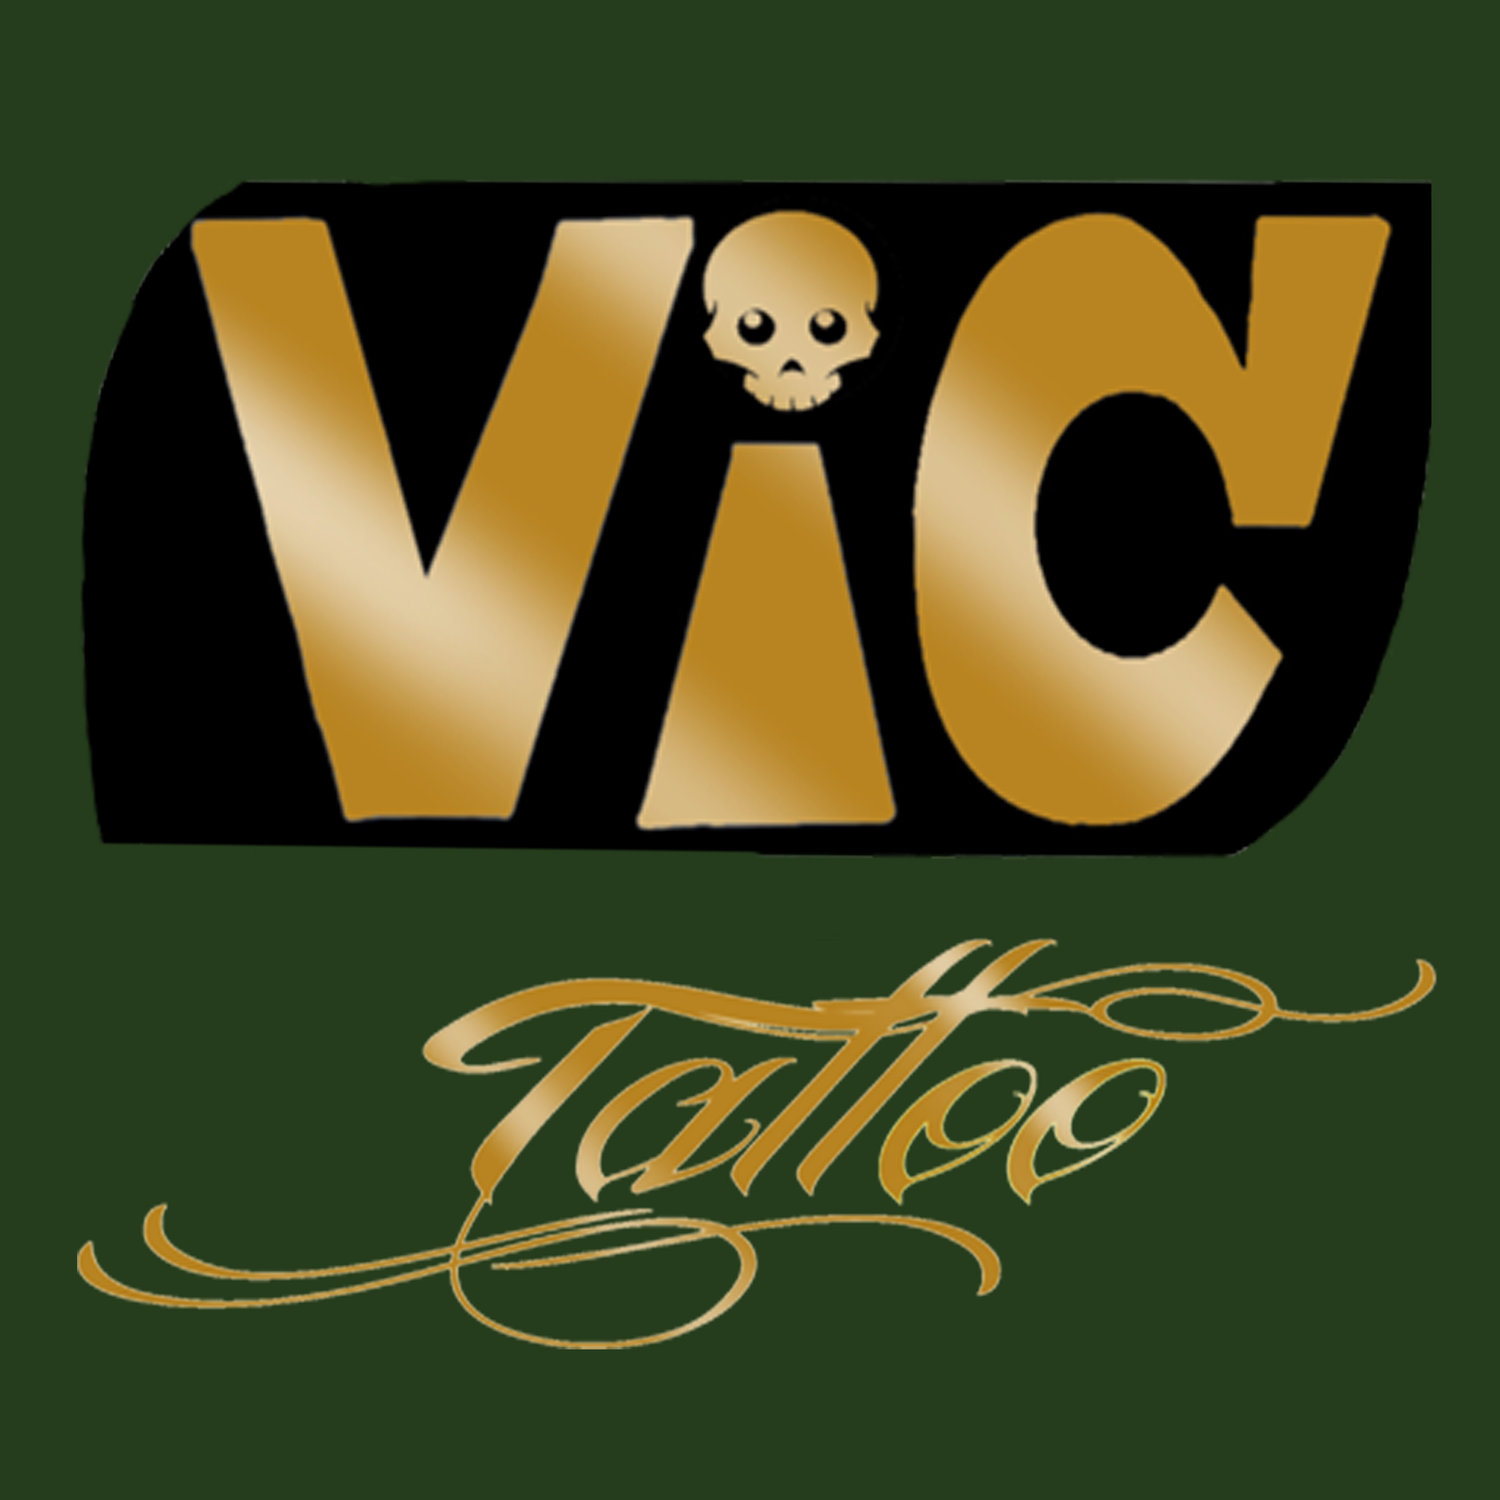 Vic Tobon Tattoo